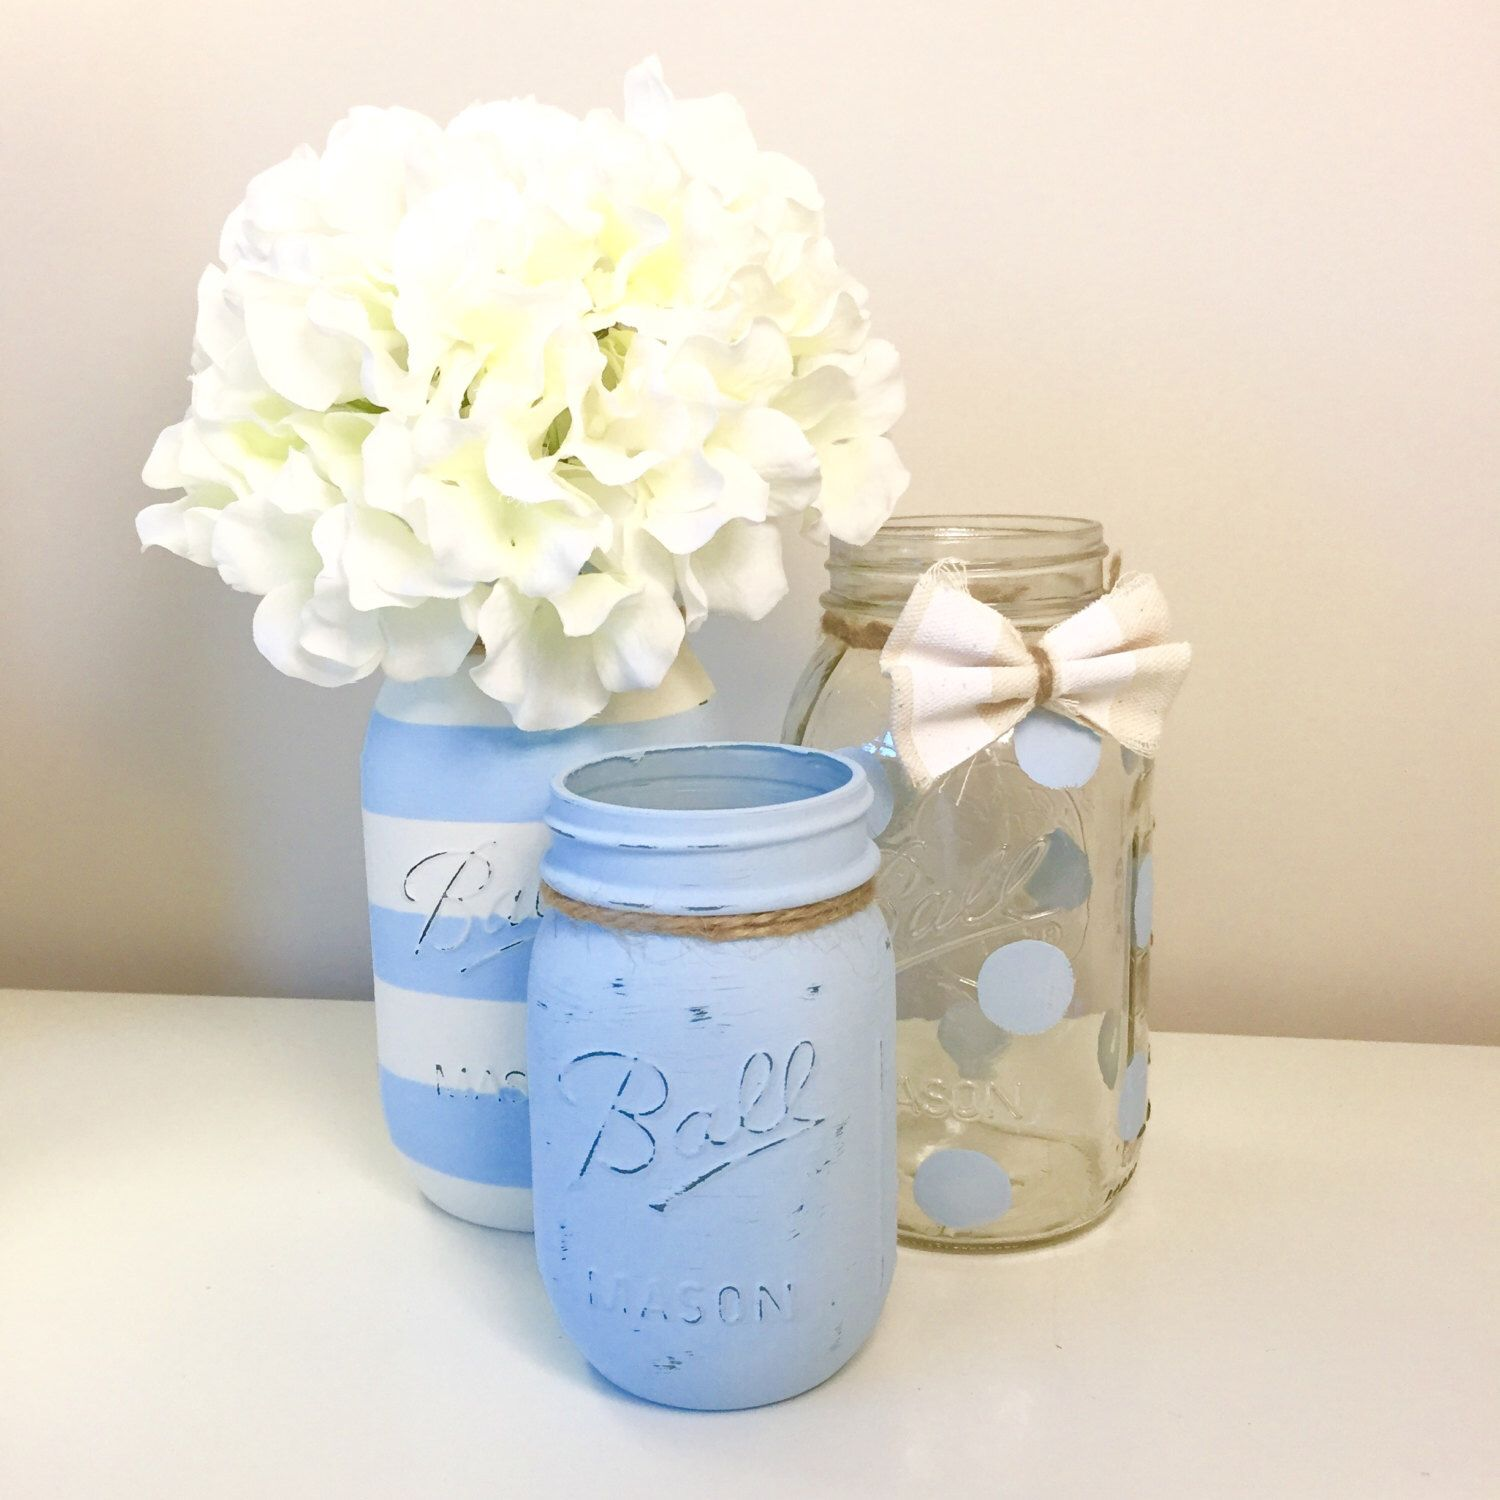 Baby Shower Mason Jar Decor Baby Boy Shower Rustic Painted Mason Jars Centerpiece Polka Dot Mason Jar Baby Shower Baby Boy Shower Baby Shower Centerpieces